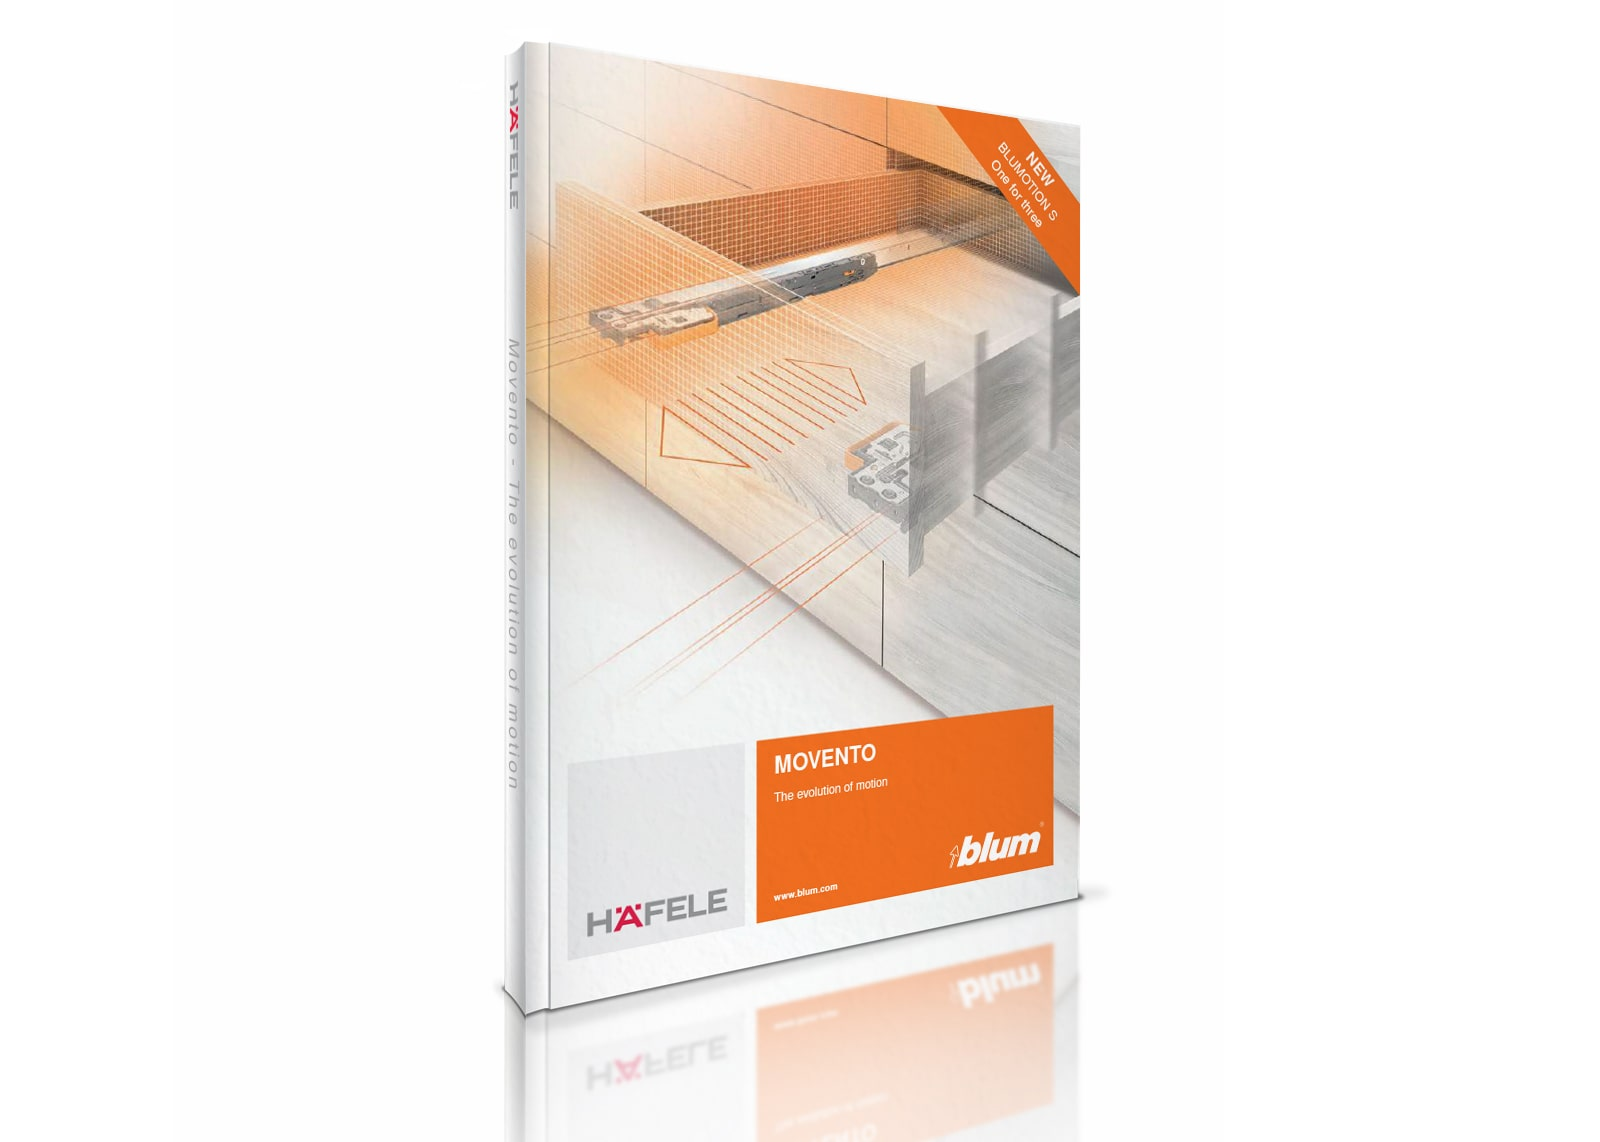 Blum MOVENTO Runner Systems